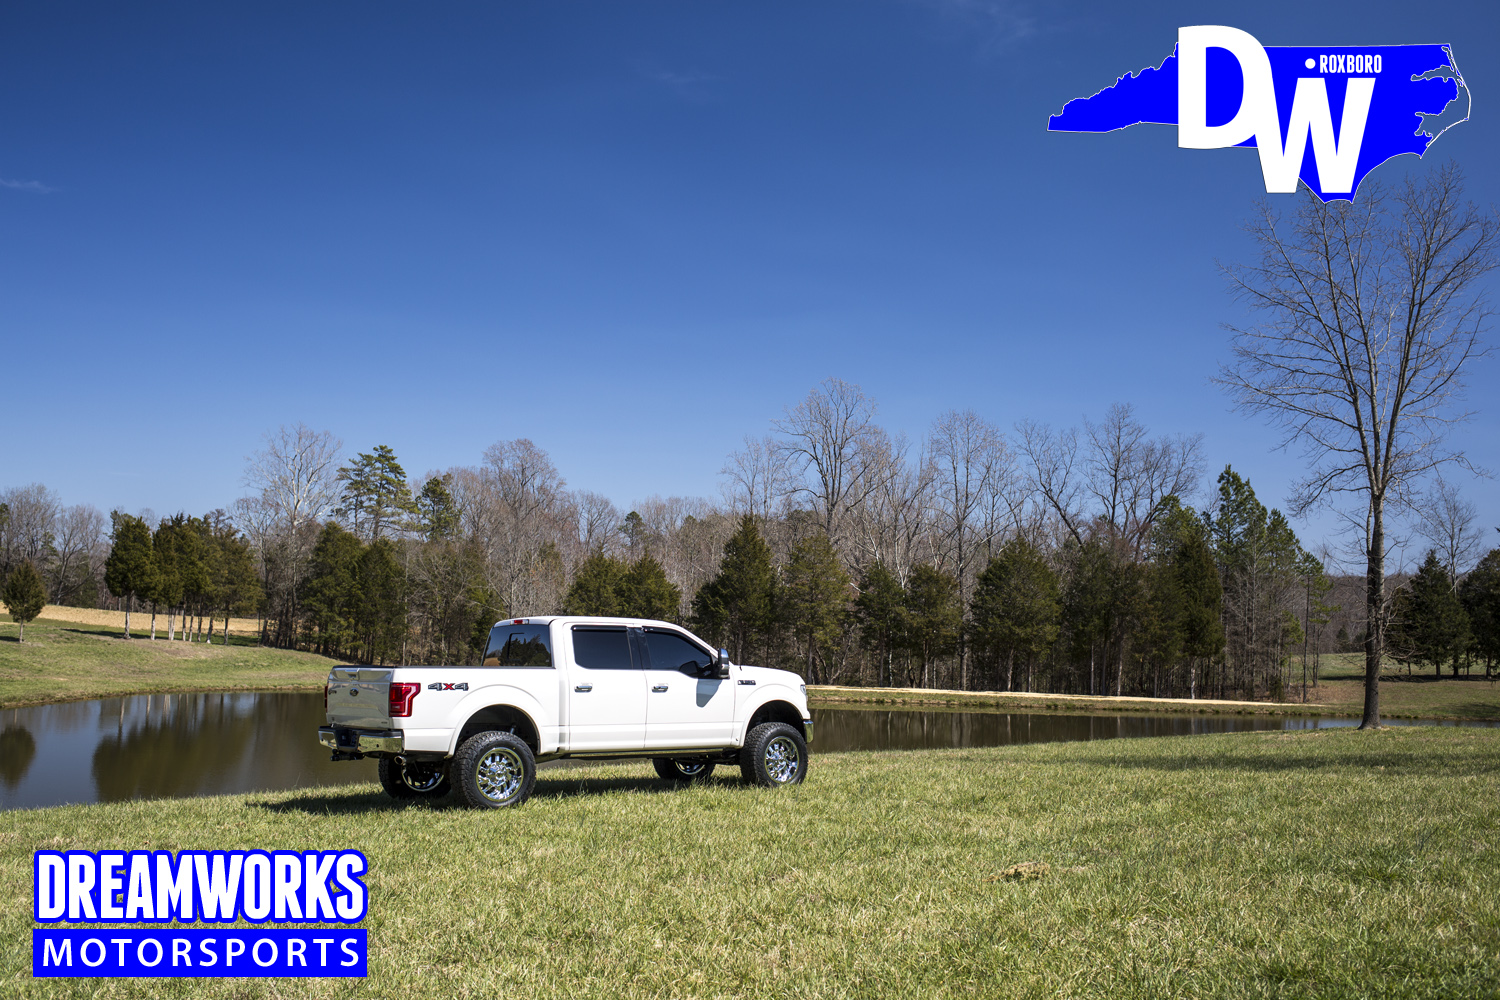 Ford_F150_By_Deamworks_Motorsports-3.jpg